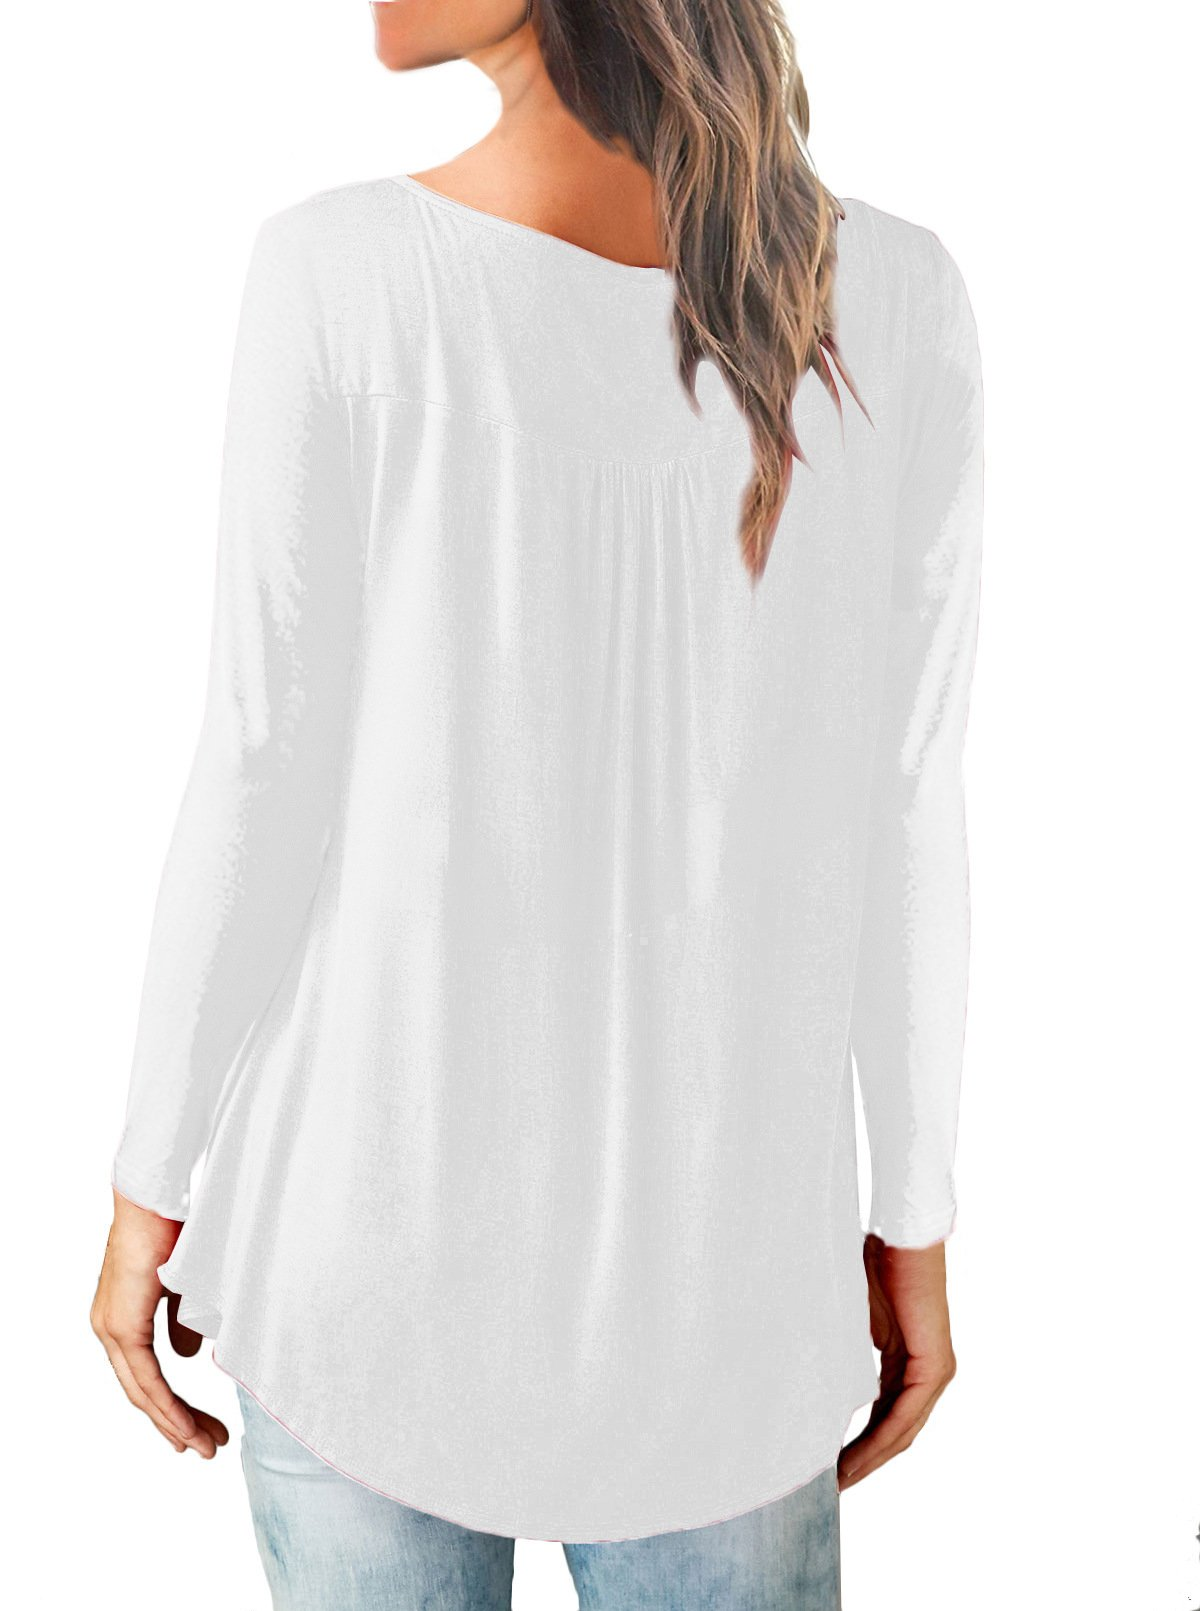 Women Plain Ruched Long Sleeve Button Casual Tops